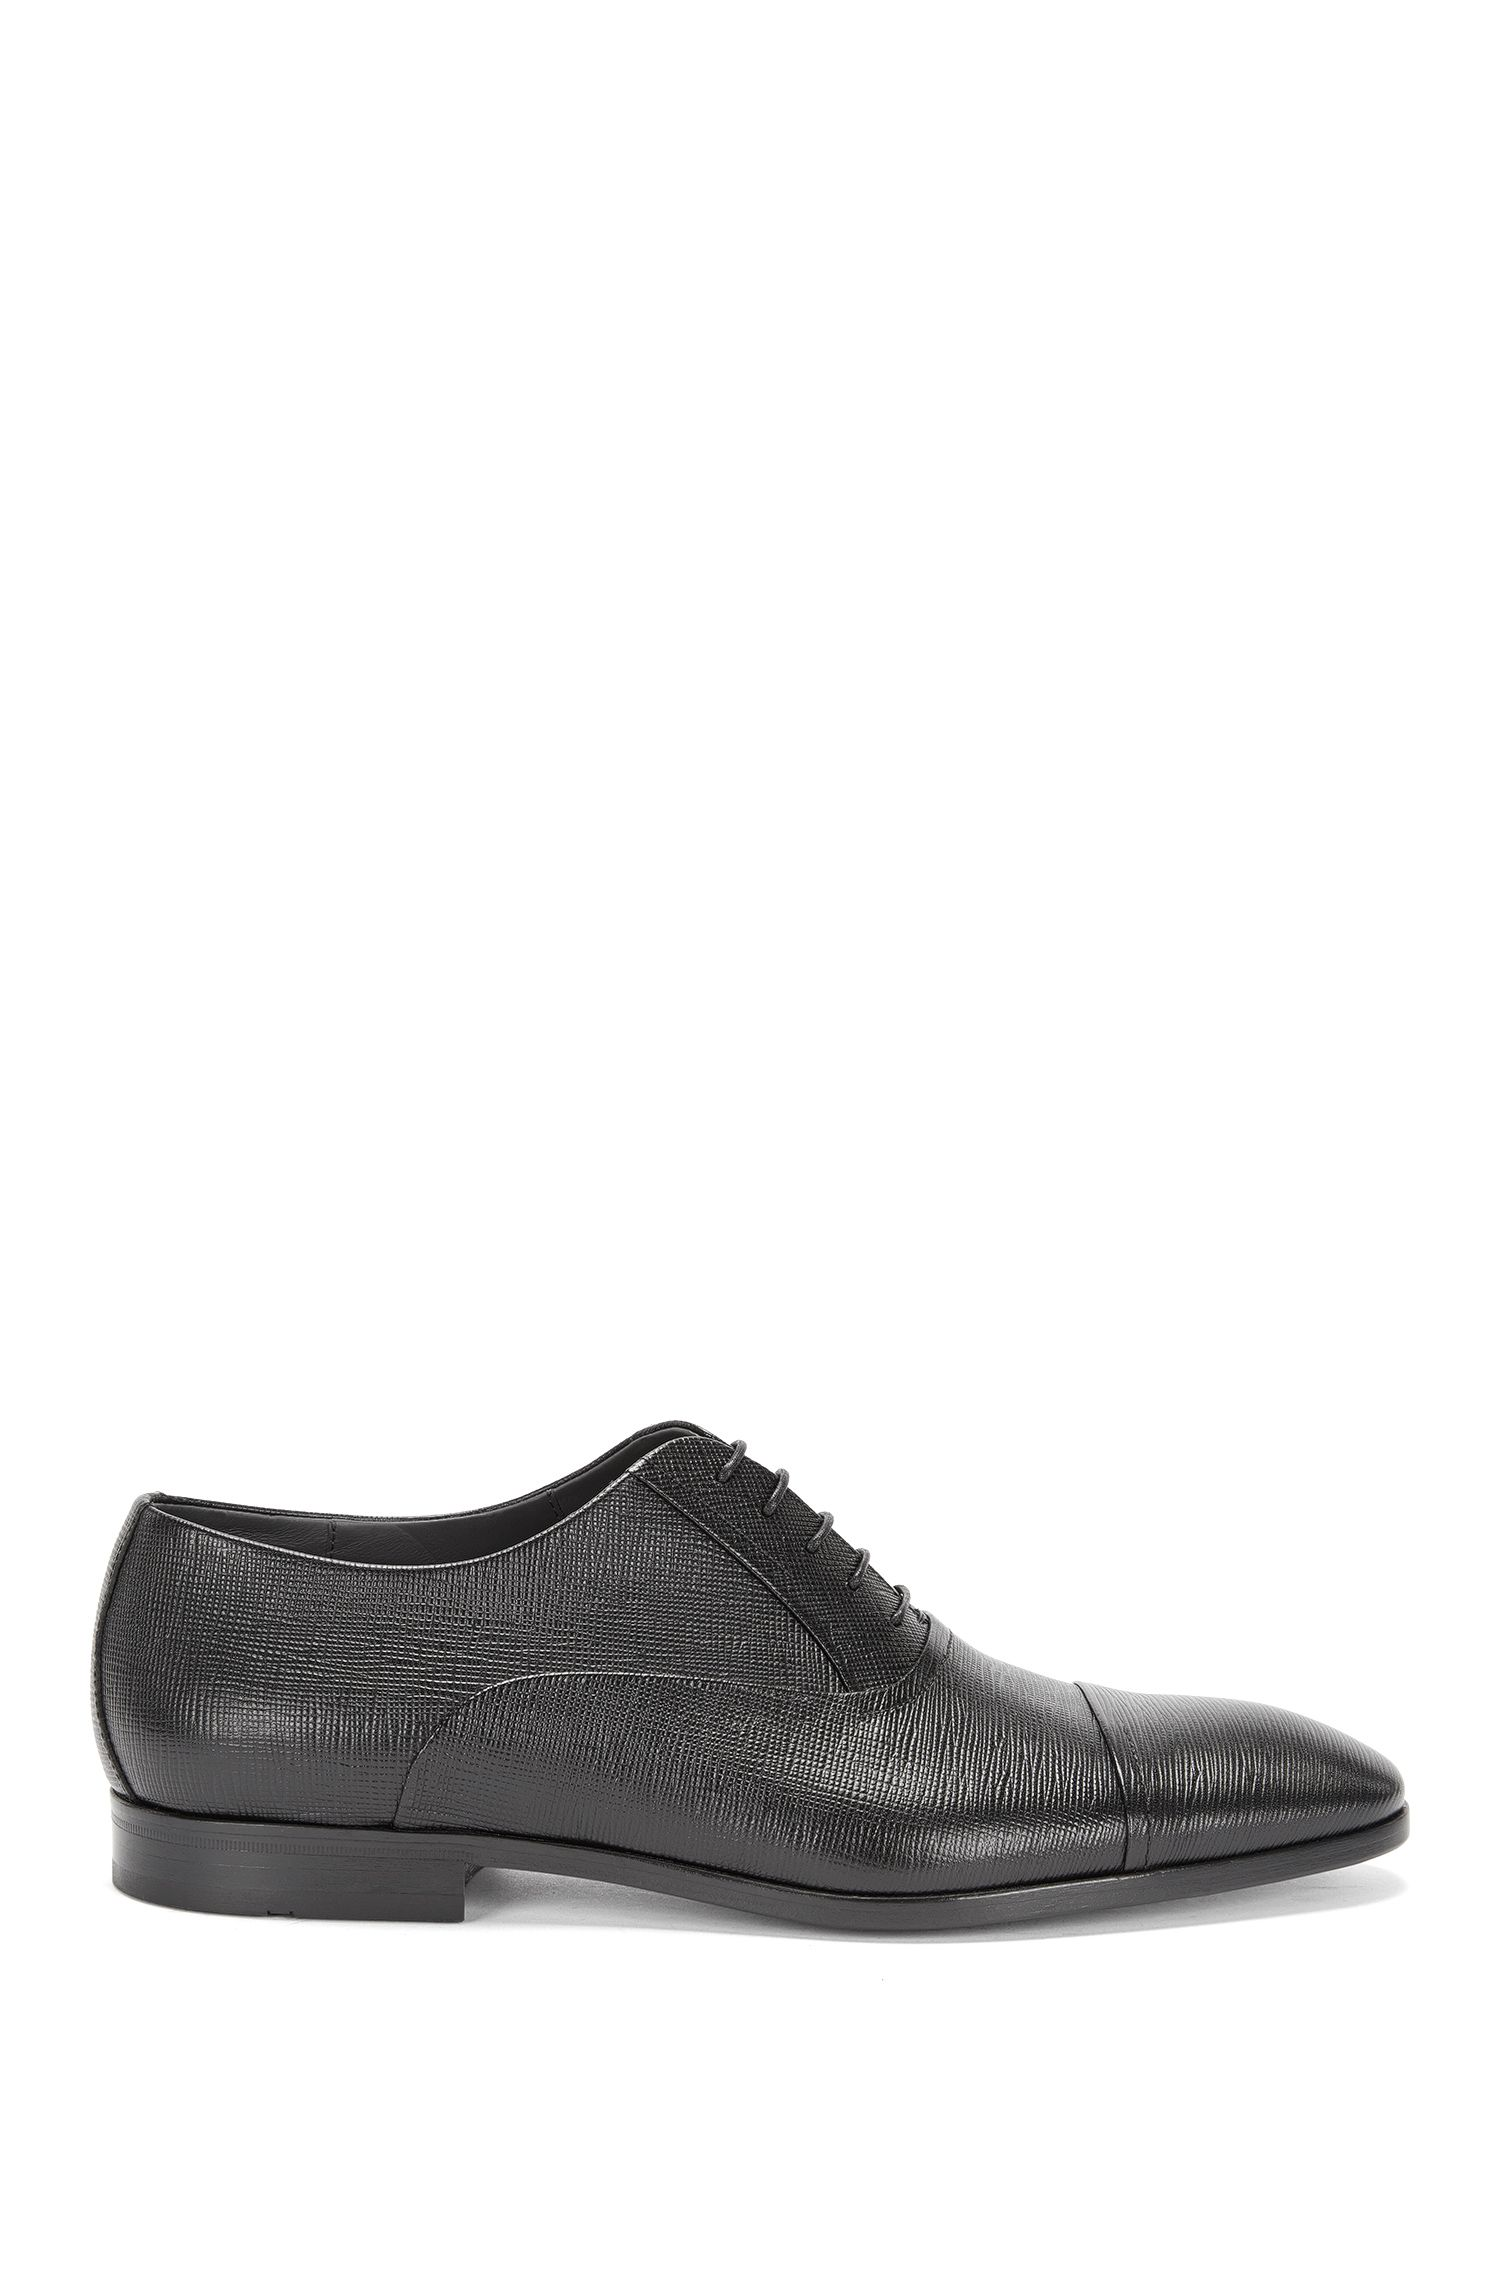 Italian Leather Oxford Dress Shoe | Eveprin